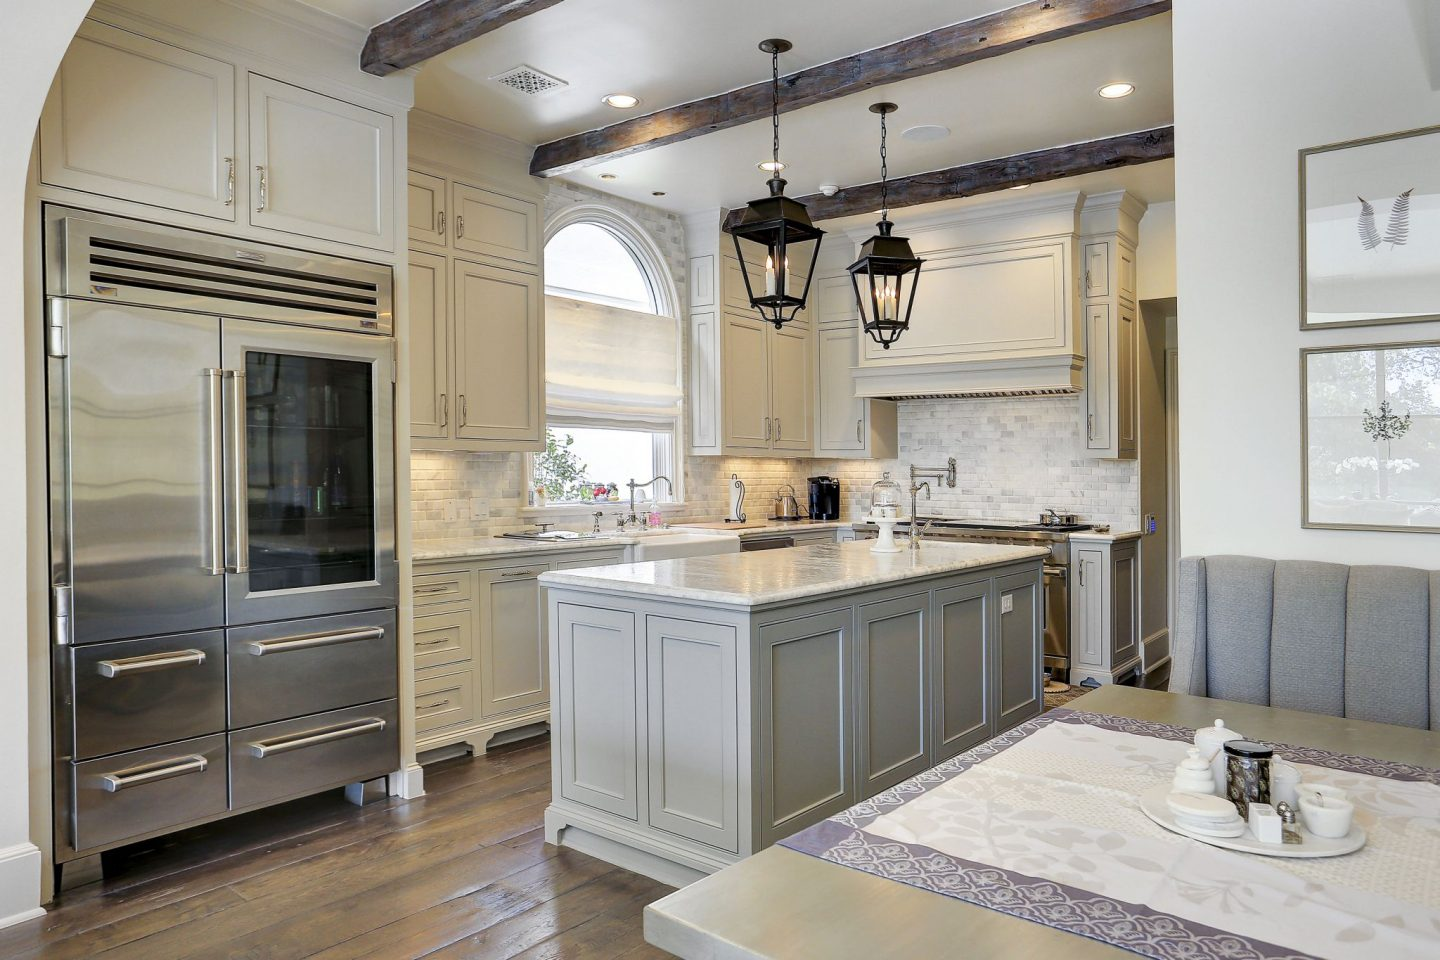 Grey and white French country kitchen in a Houston home by Thomas O'Neill. Come explore more Country French Decor Ideas from luxurious and grand homes.